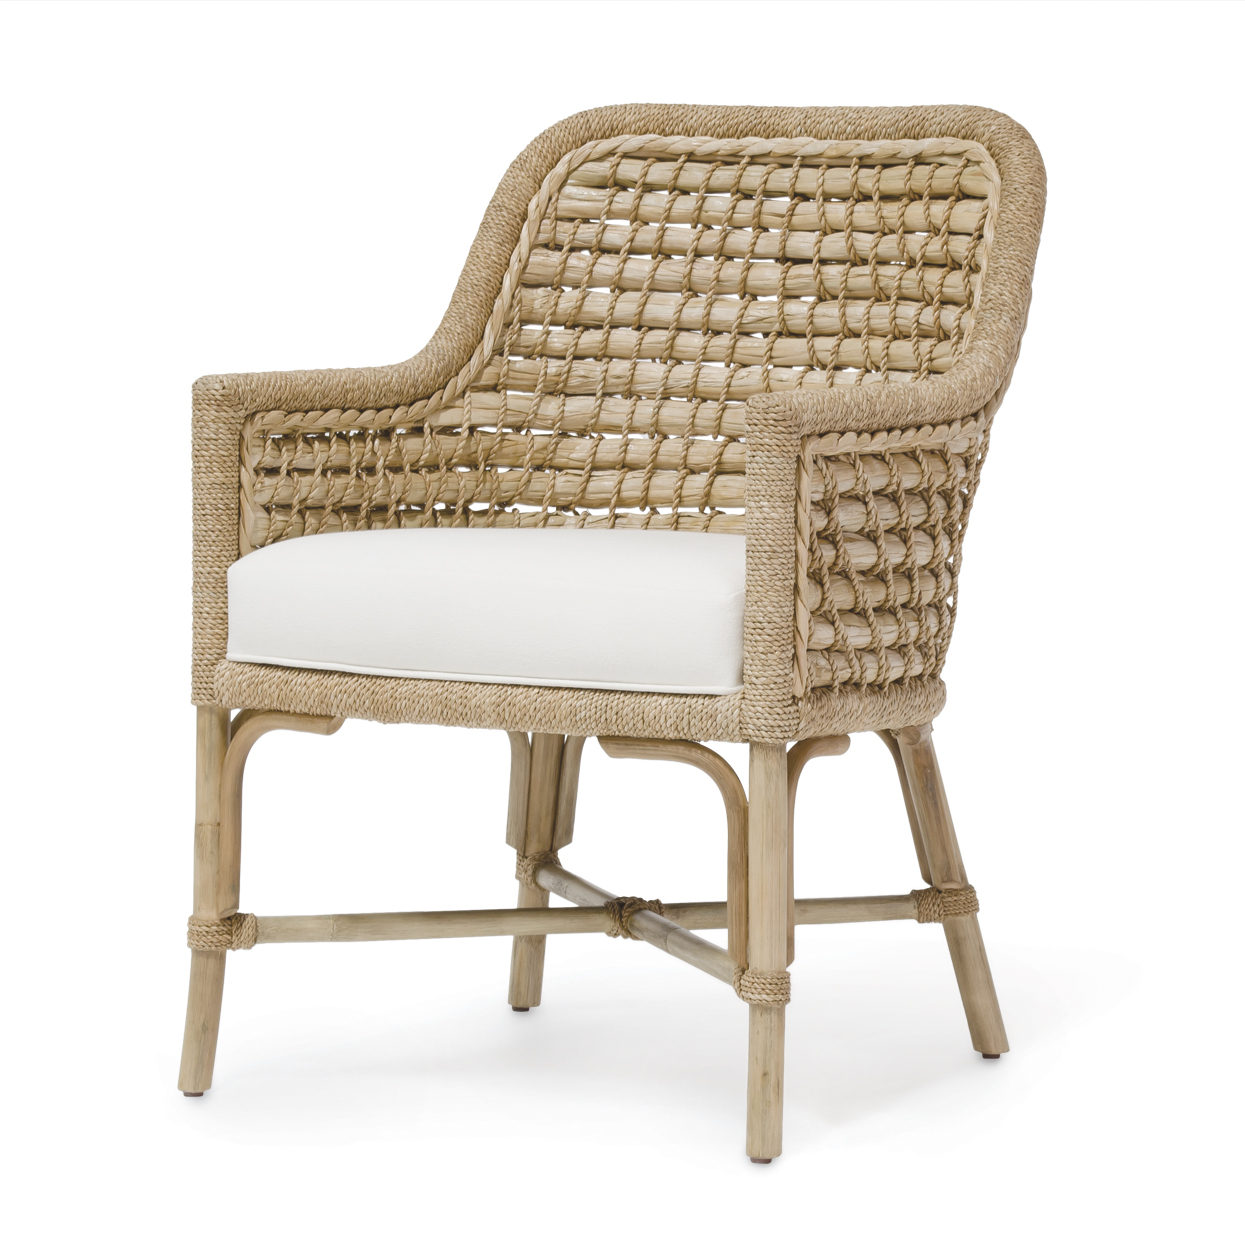 seagrass arm chair office elbow pads woven back mecox gardens